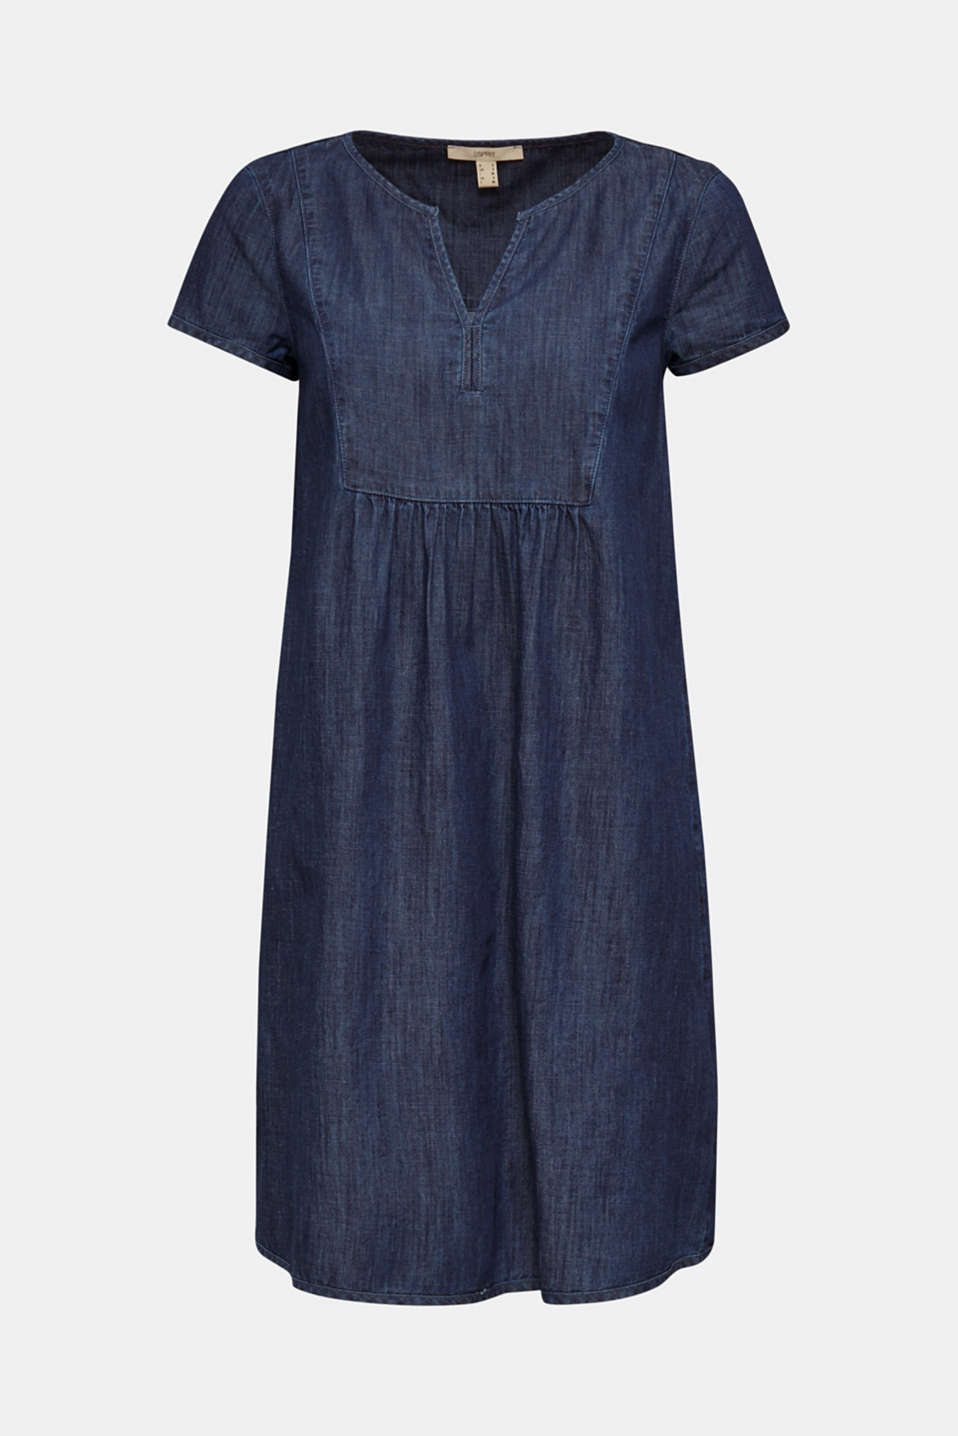 Denim tent dress made of 100% cotton, BLUE RINSE, detail image number 5